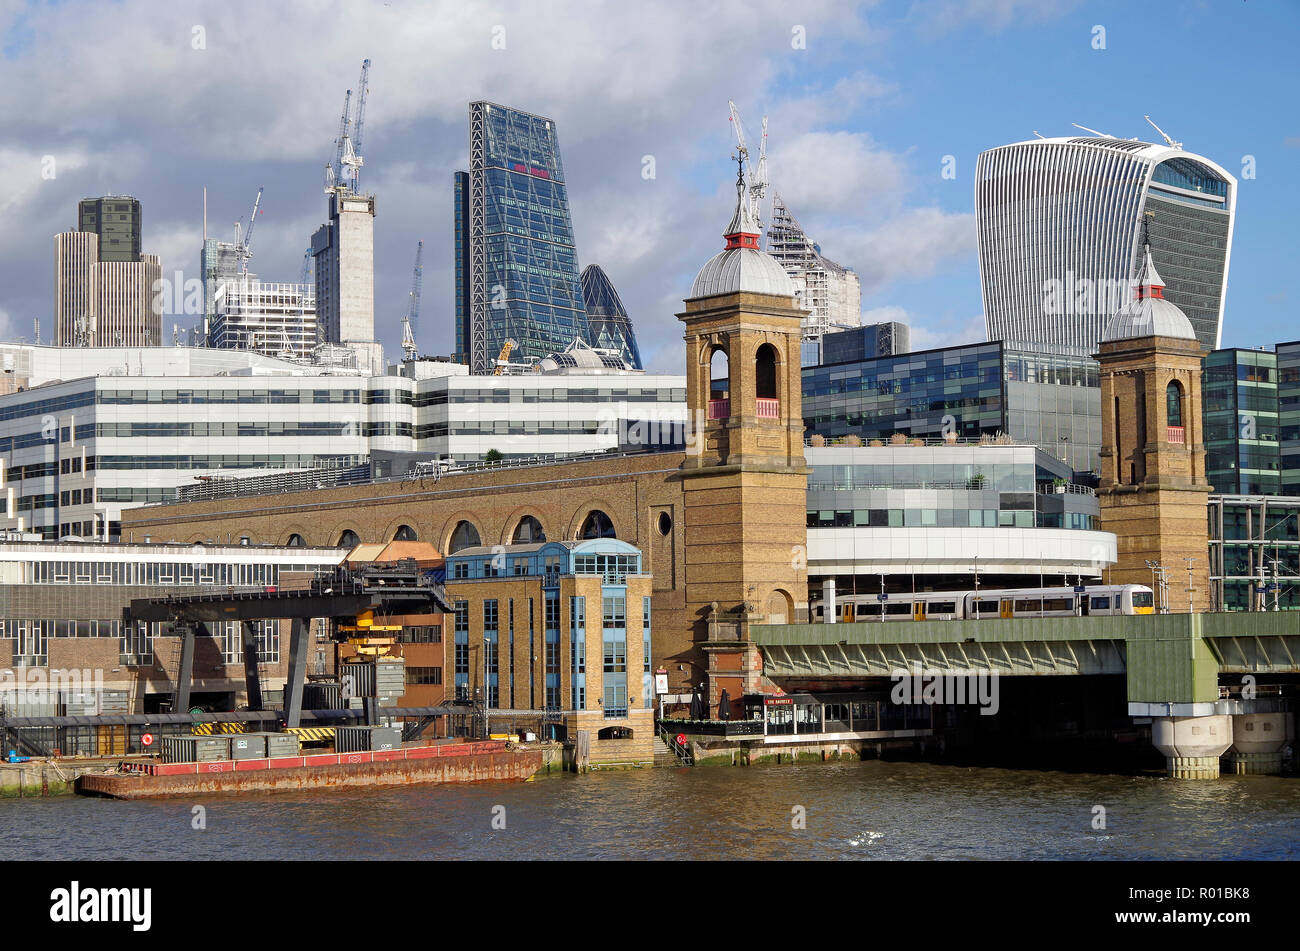 Cannon Street station and the river Thames seen from Blackfriars bridge, with office towers and construction cranes as a backdrop - Stock Image